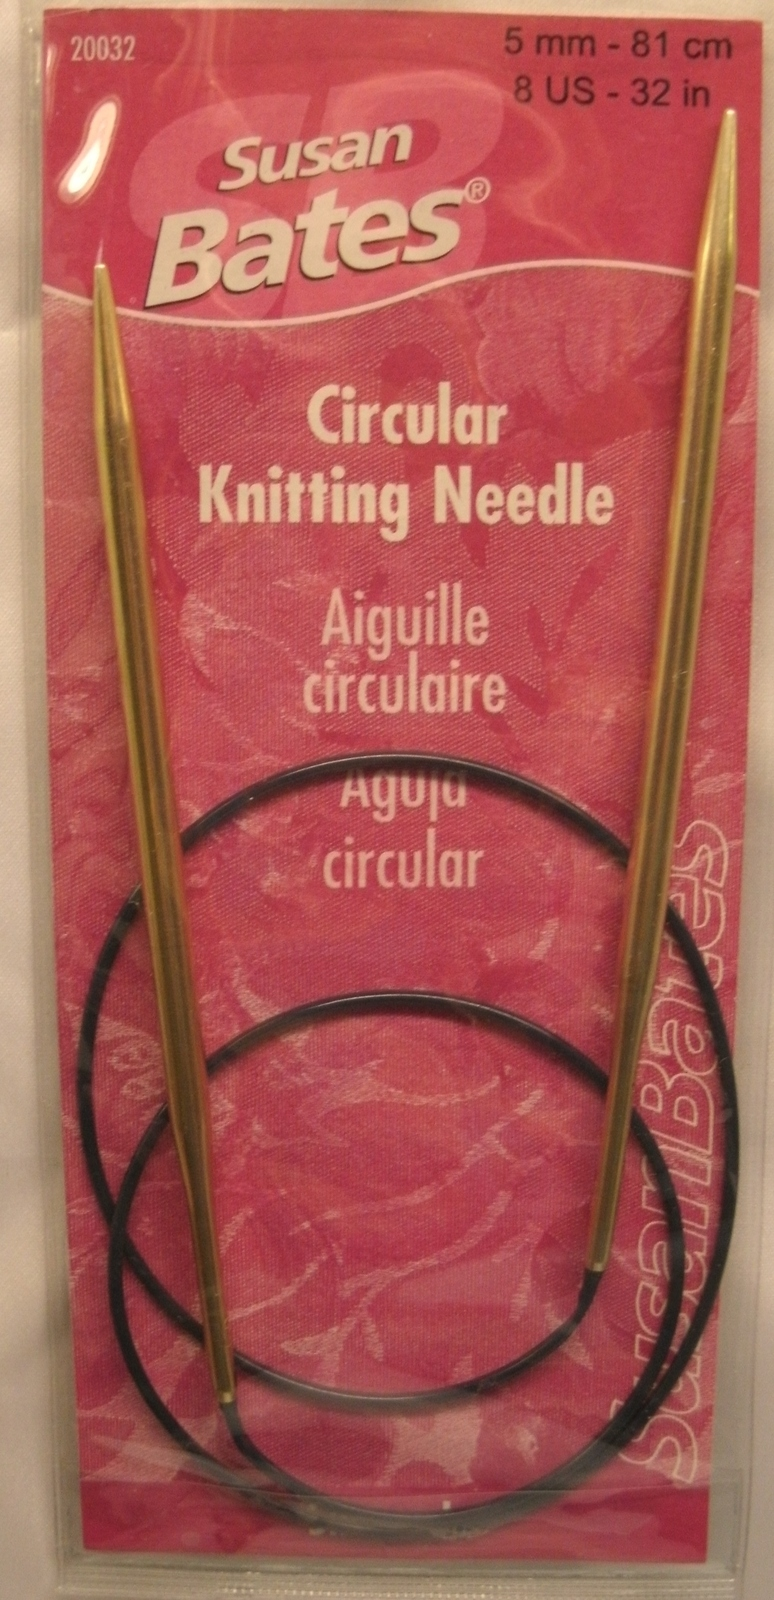 "Primary image for Susan Bates CIRCULAR KNITTING NEEDLE - NEW - 32"" Sizes 6, 7 or 8 Silverado"